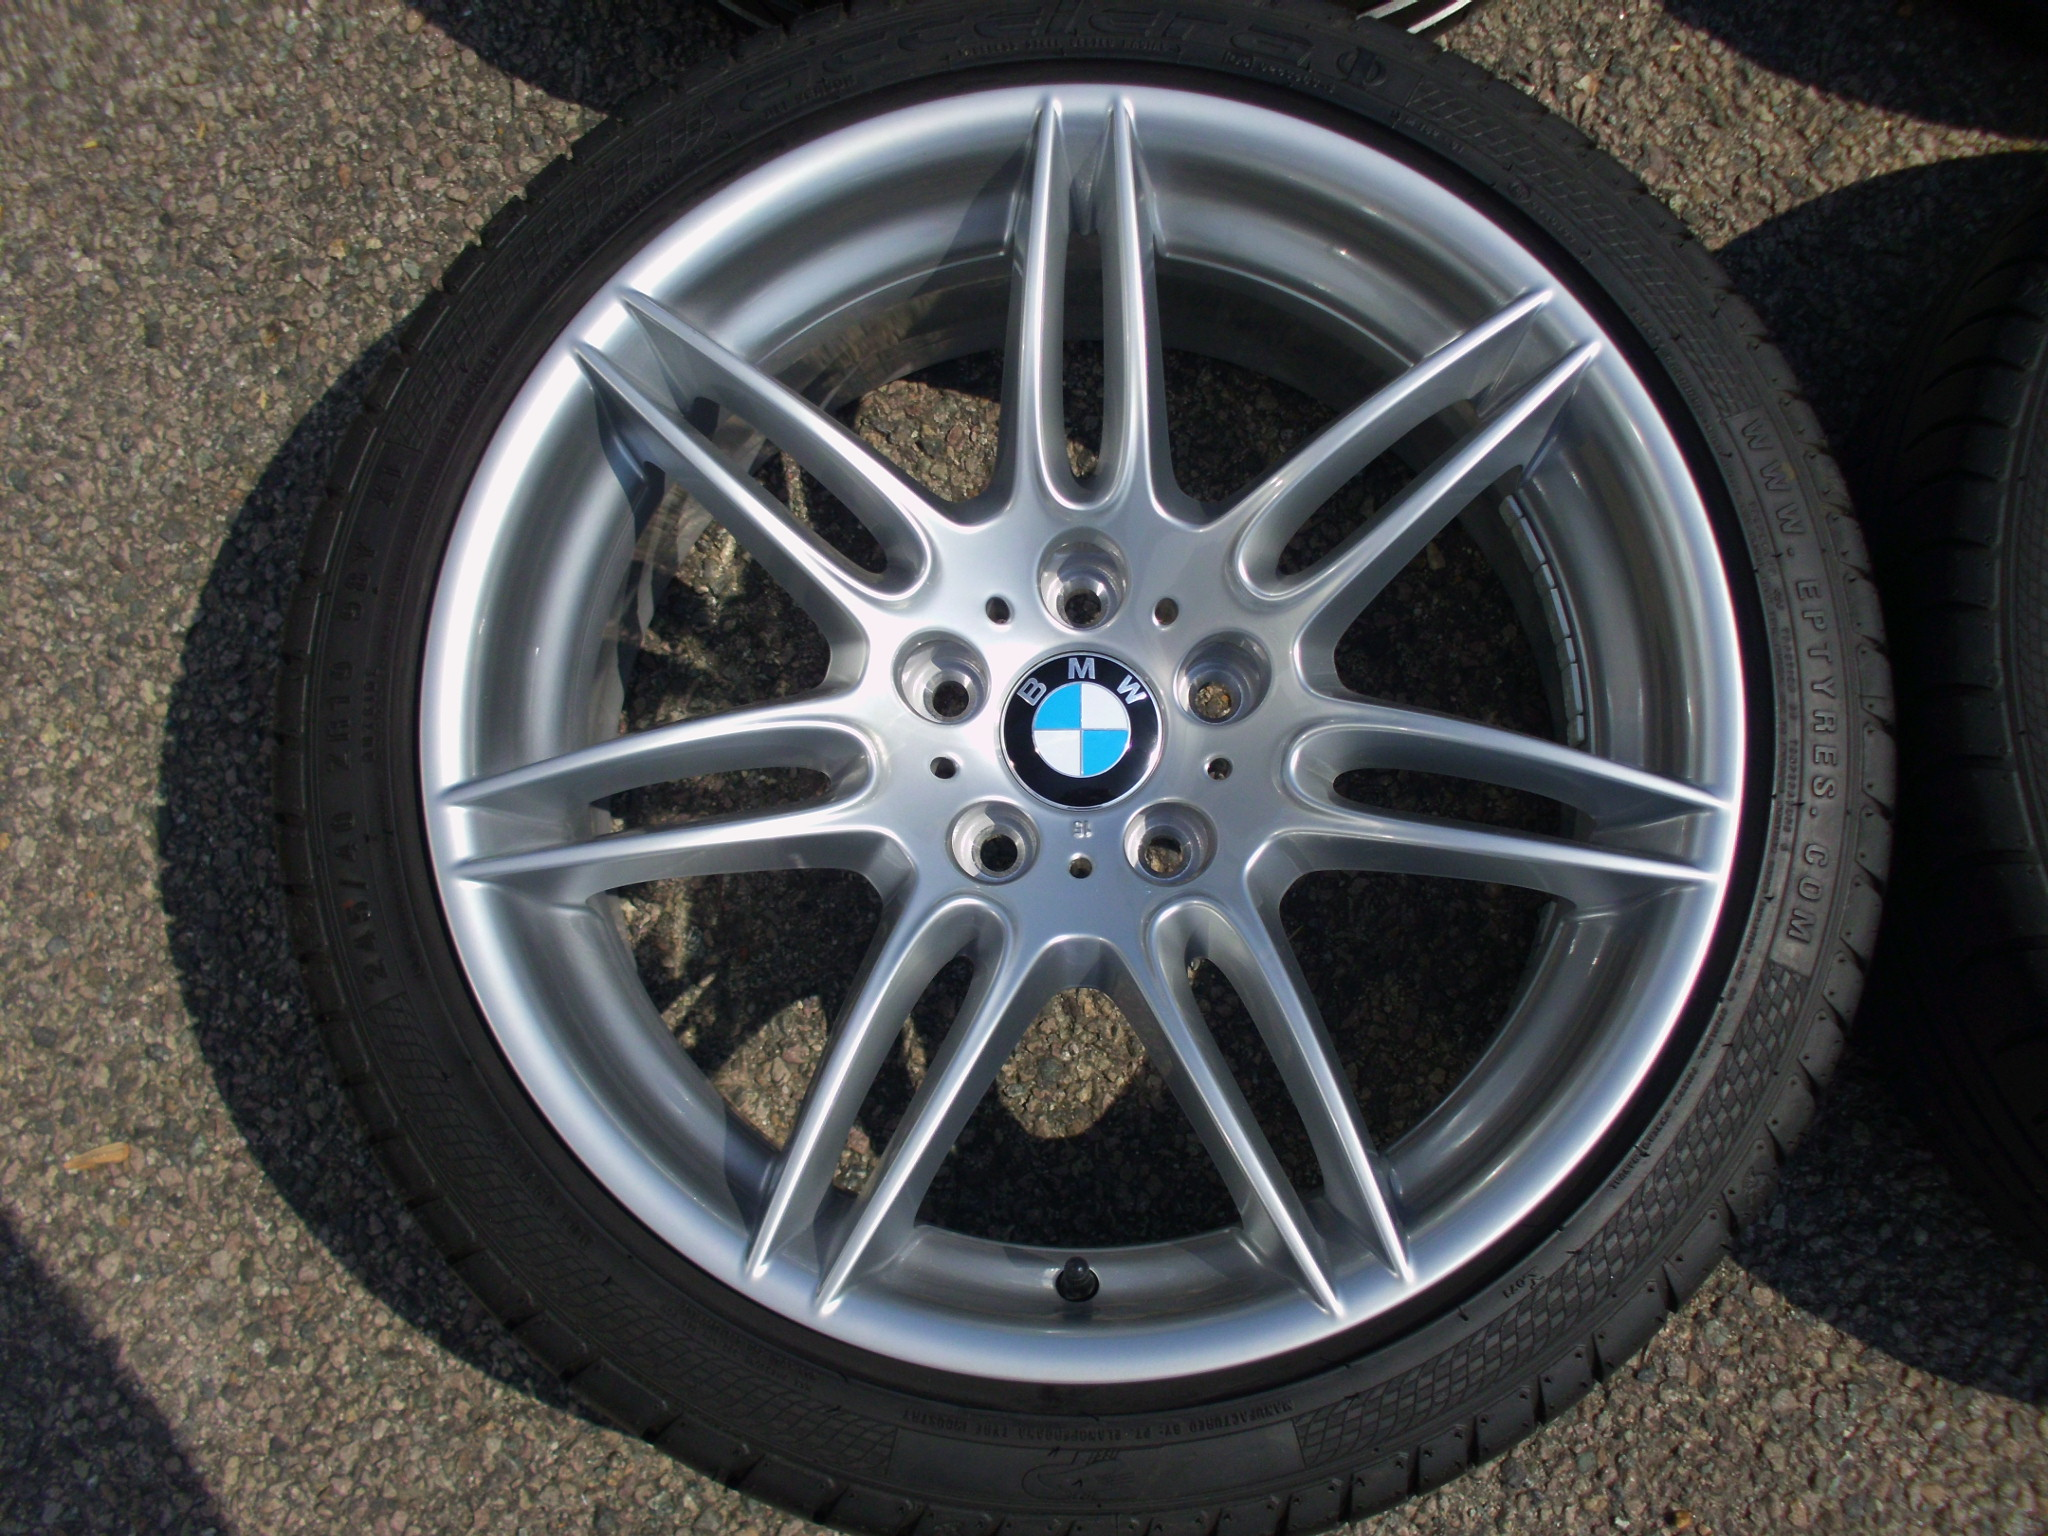 "USED 19"" GENUINE STYLE 288 DOUBLE SPOKE ALLOYS FROM LATER SPORT MODELS,WIDE REAR, FULLY REFURBED INC VG TYRES"